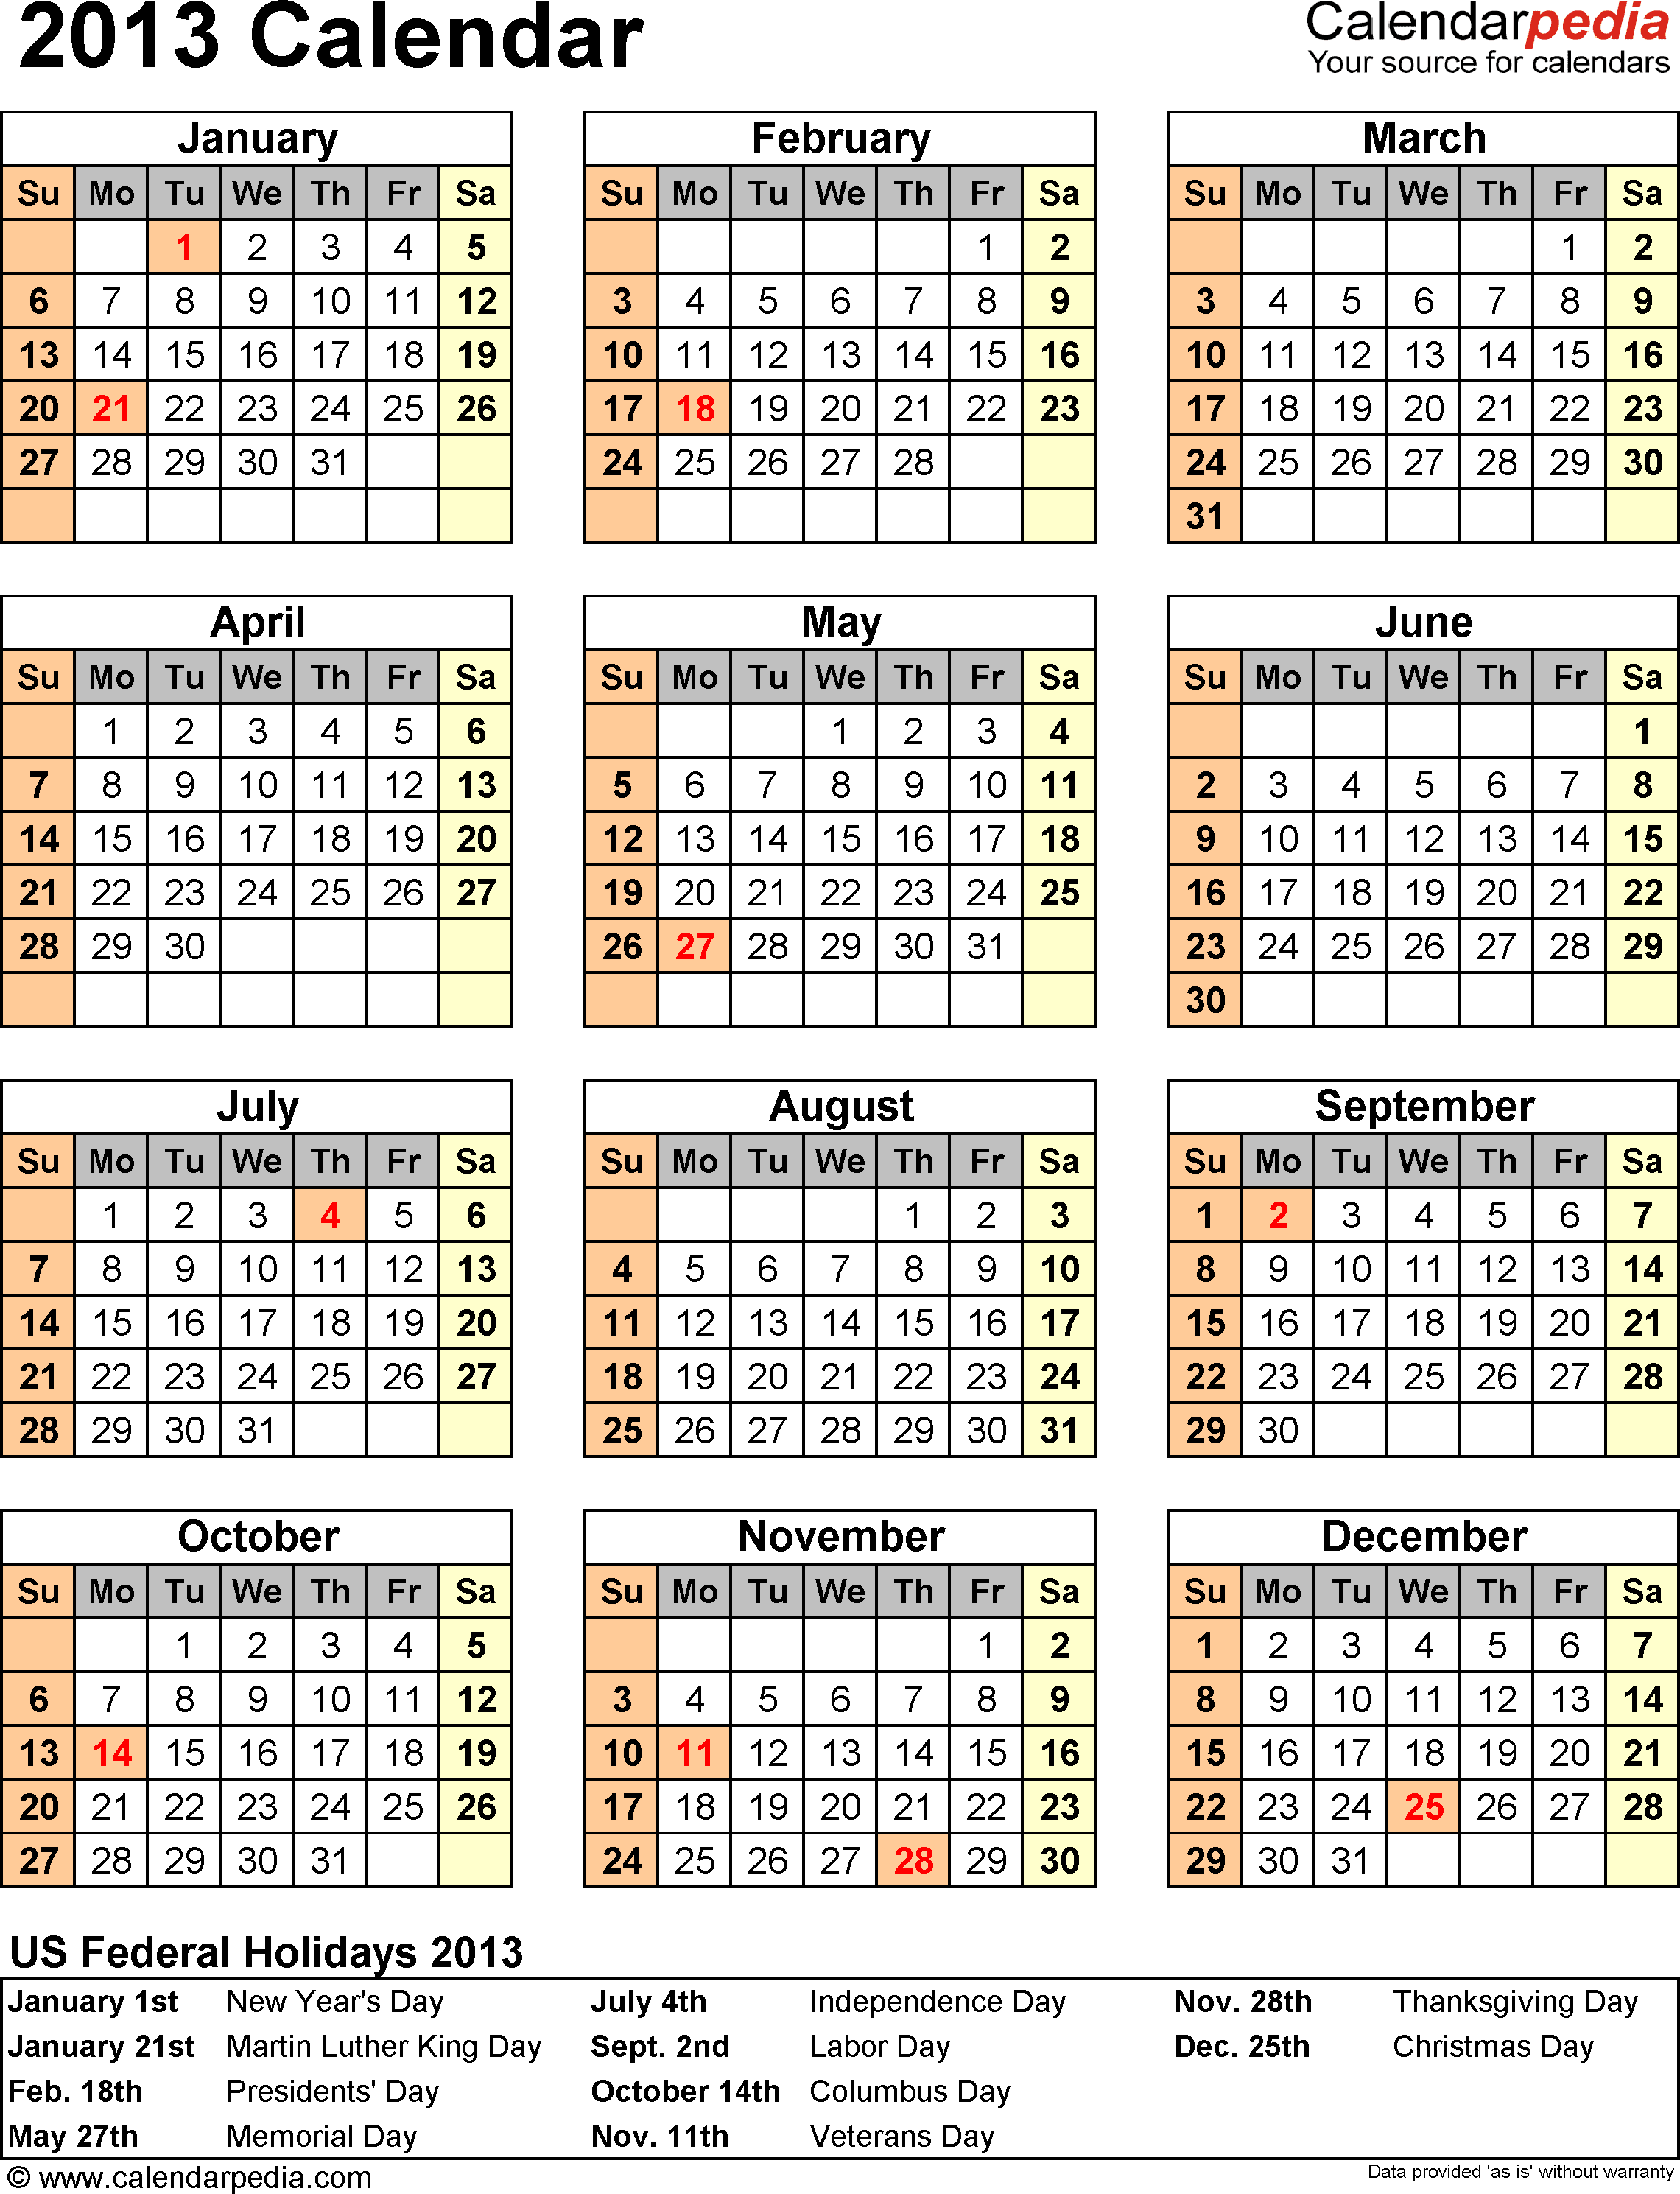 how to make a calendar in word 2013